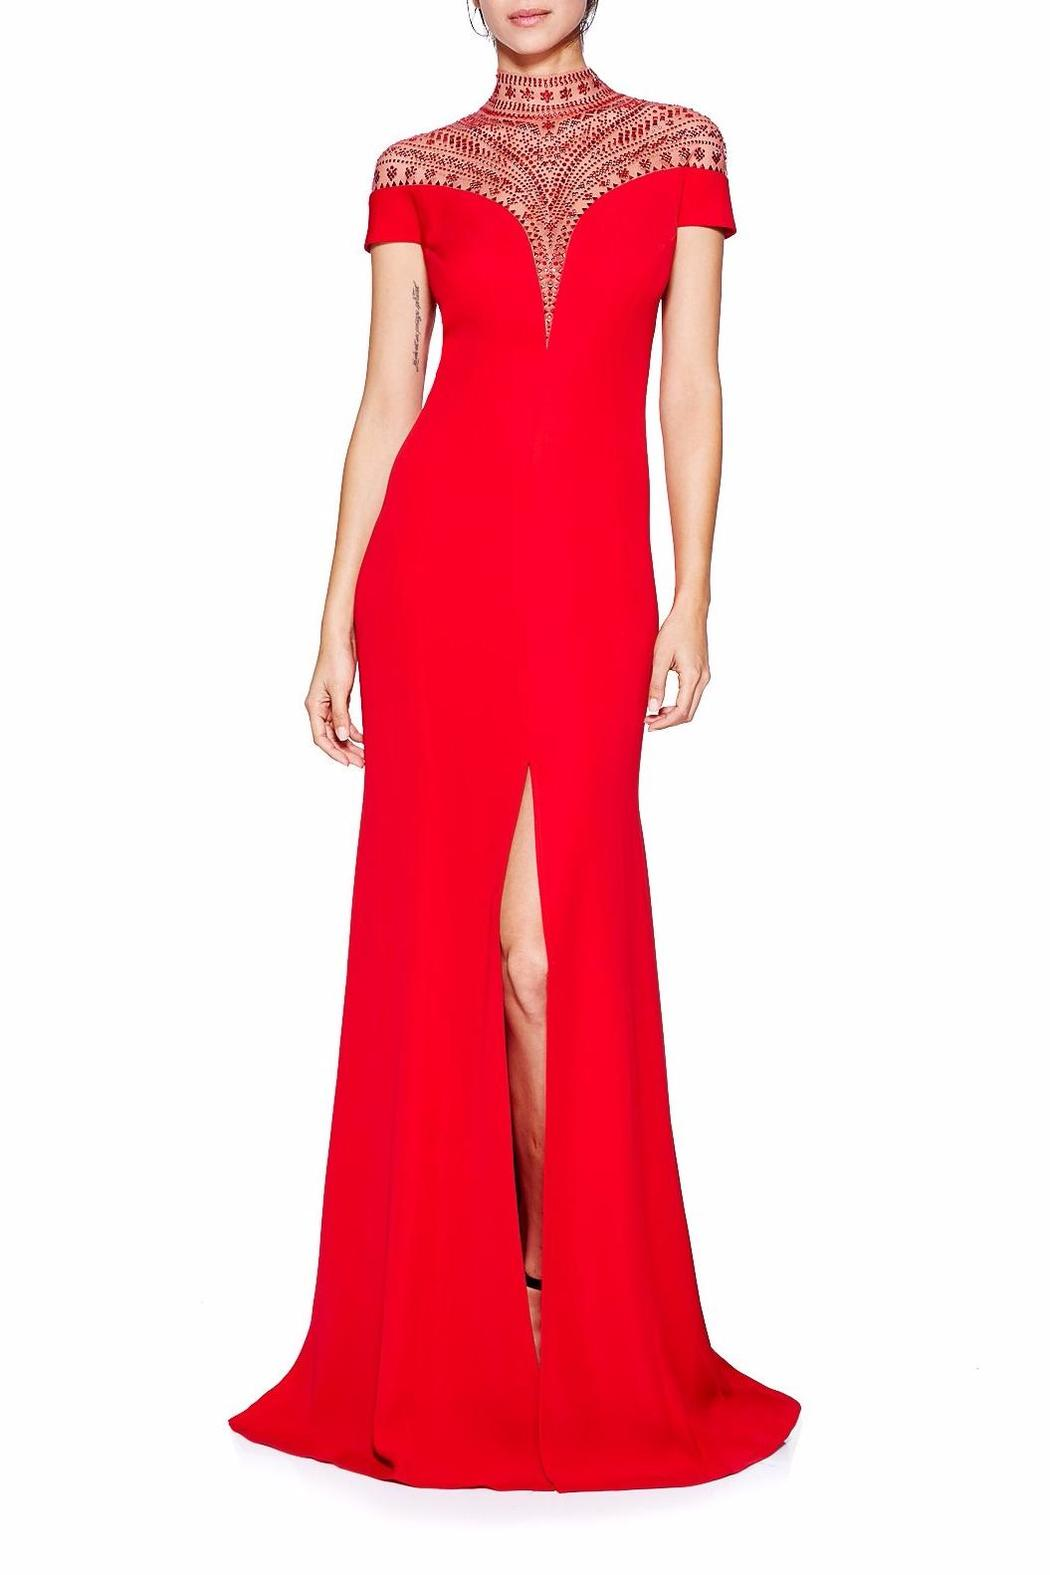 f9b71ded868 Tadashi Shoji Piper Gown from New Jersey by District 5 Boutique ...